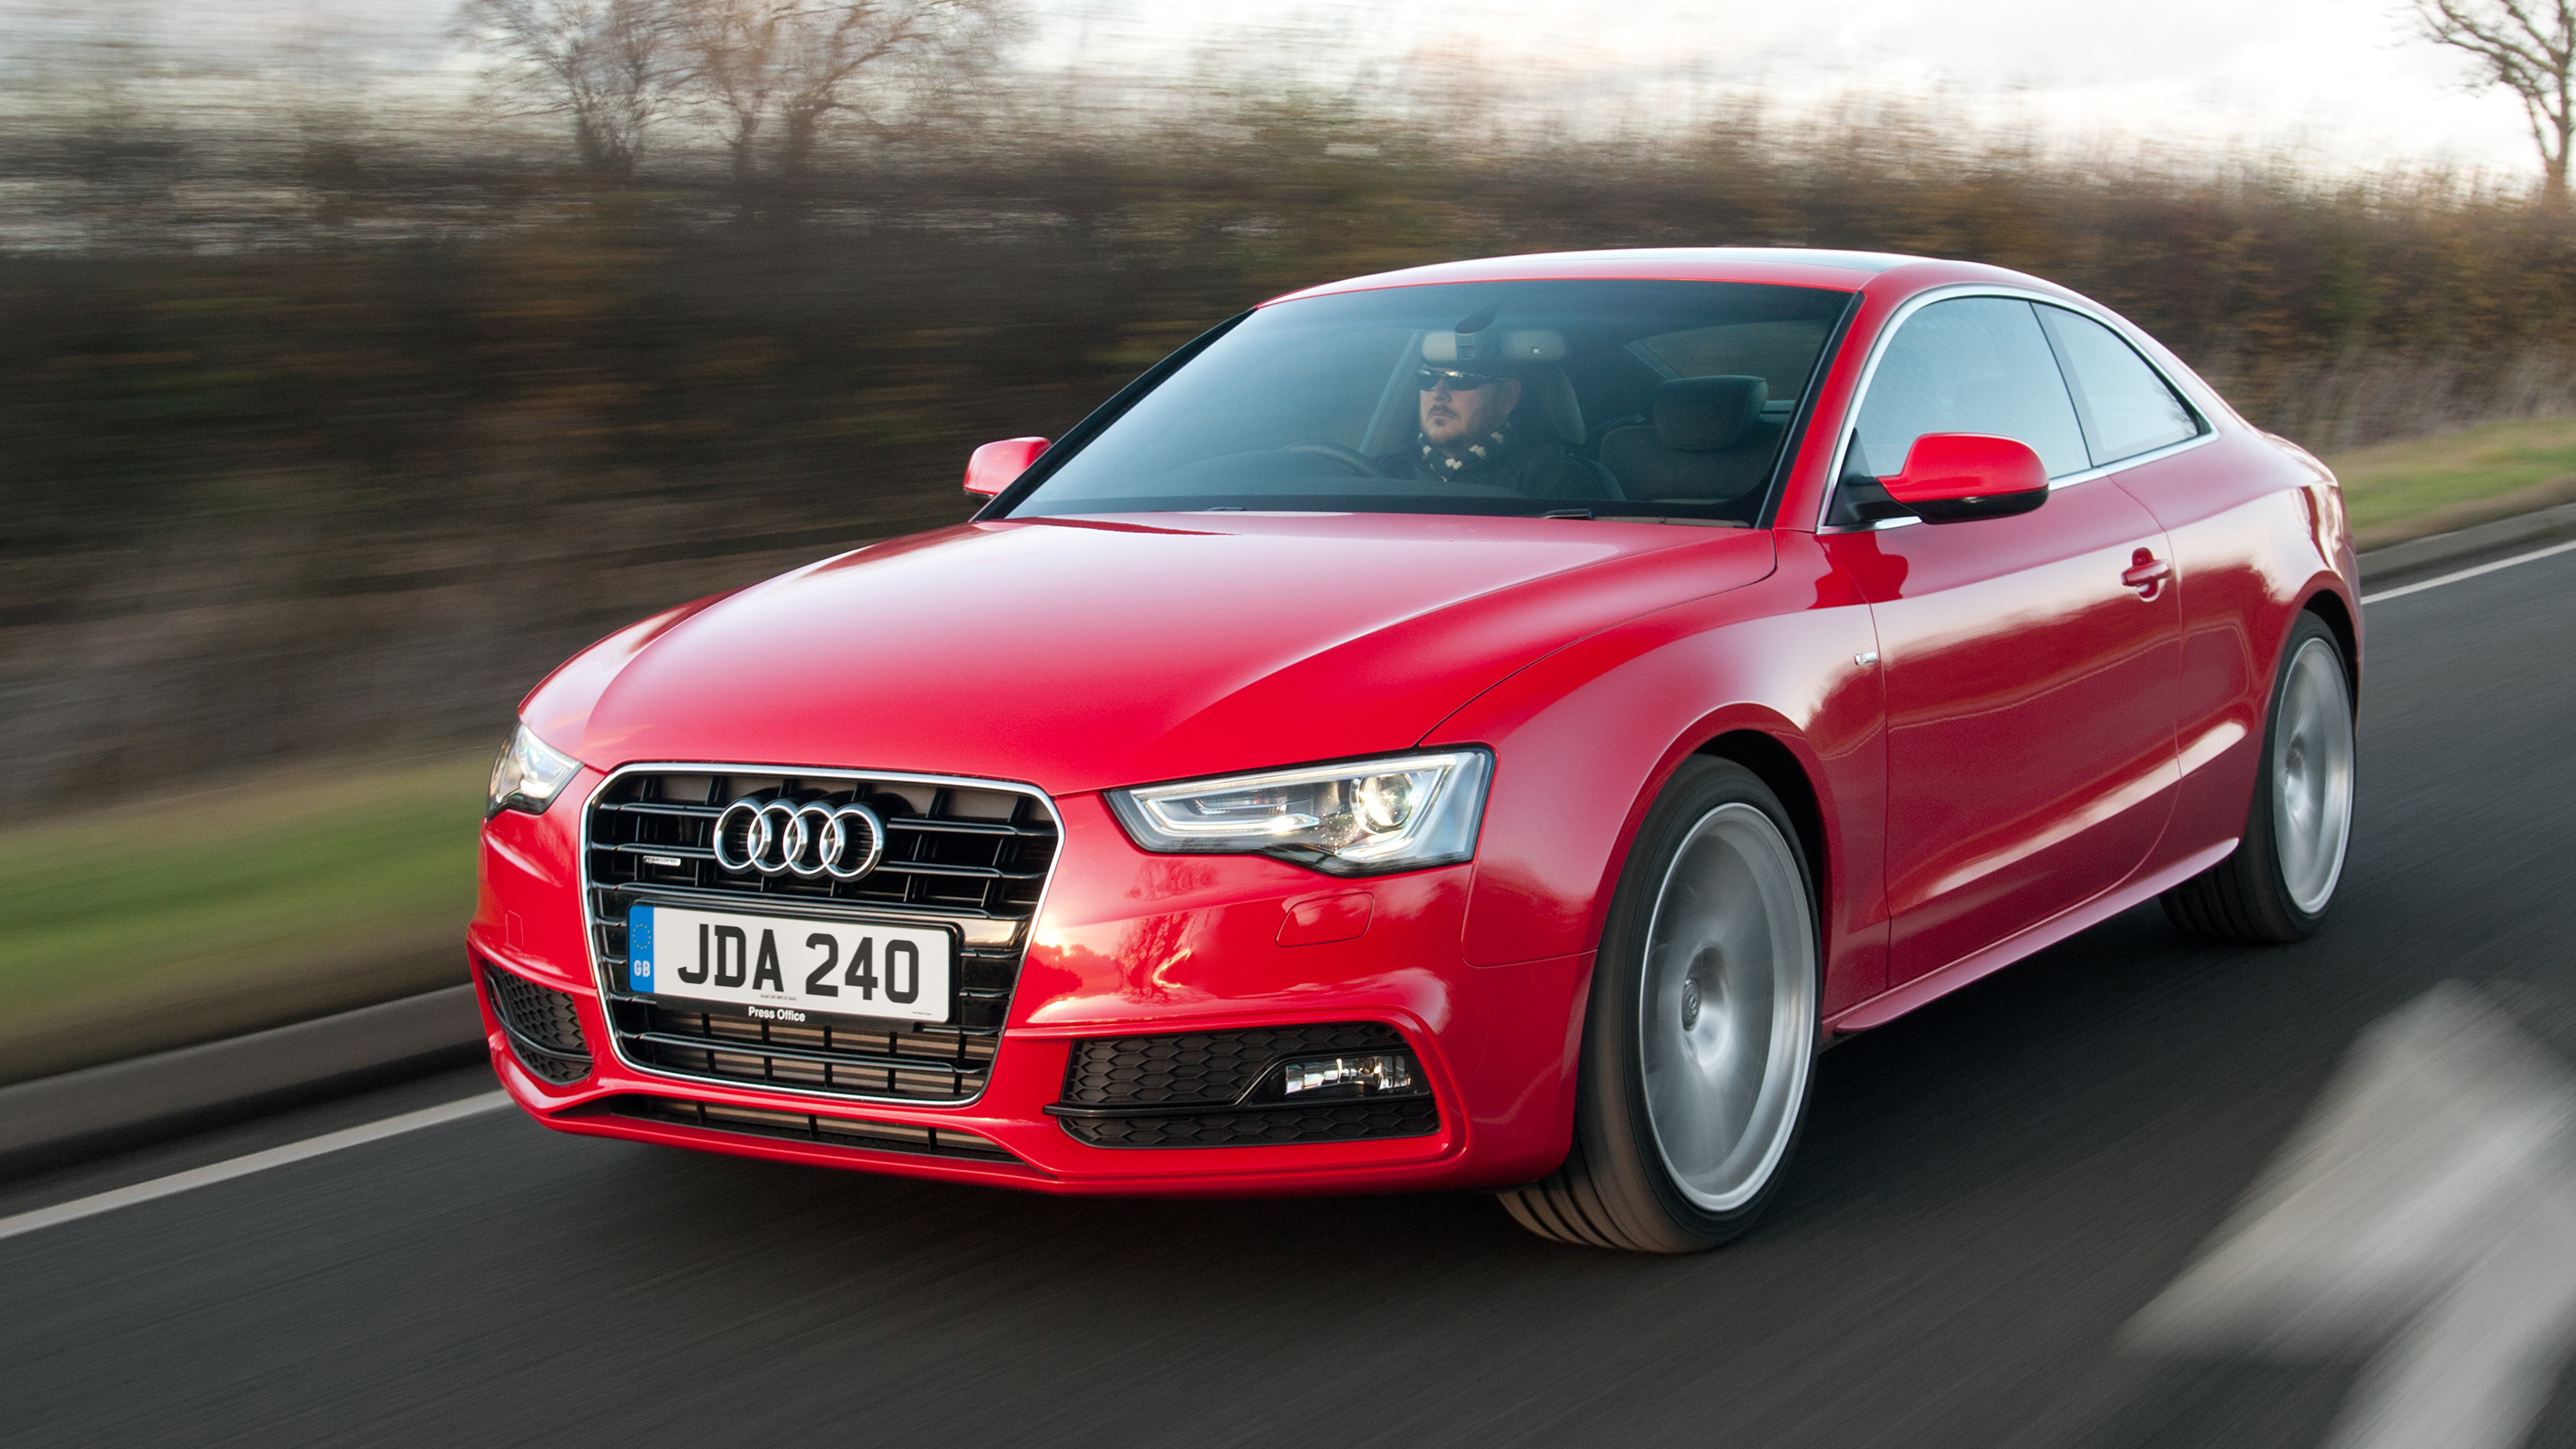 sportback hatch sale tim for quattro car blue carsguide tfsi reviews review robson audi